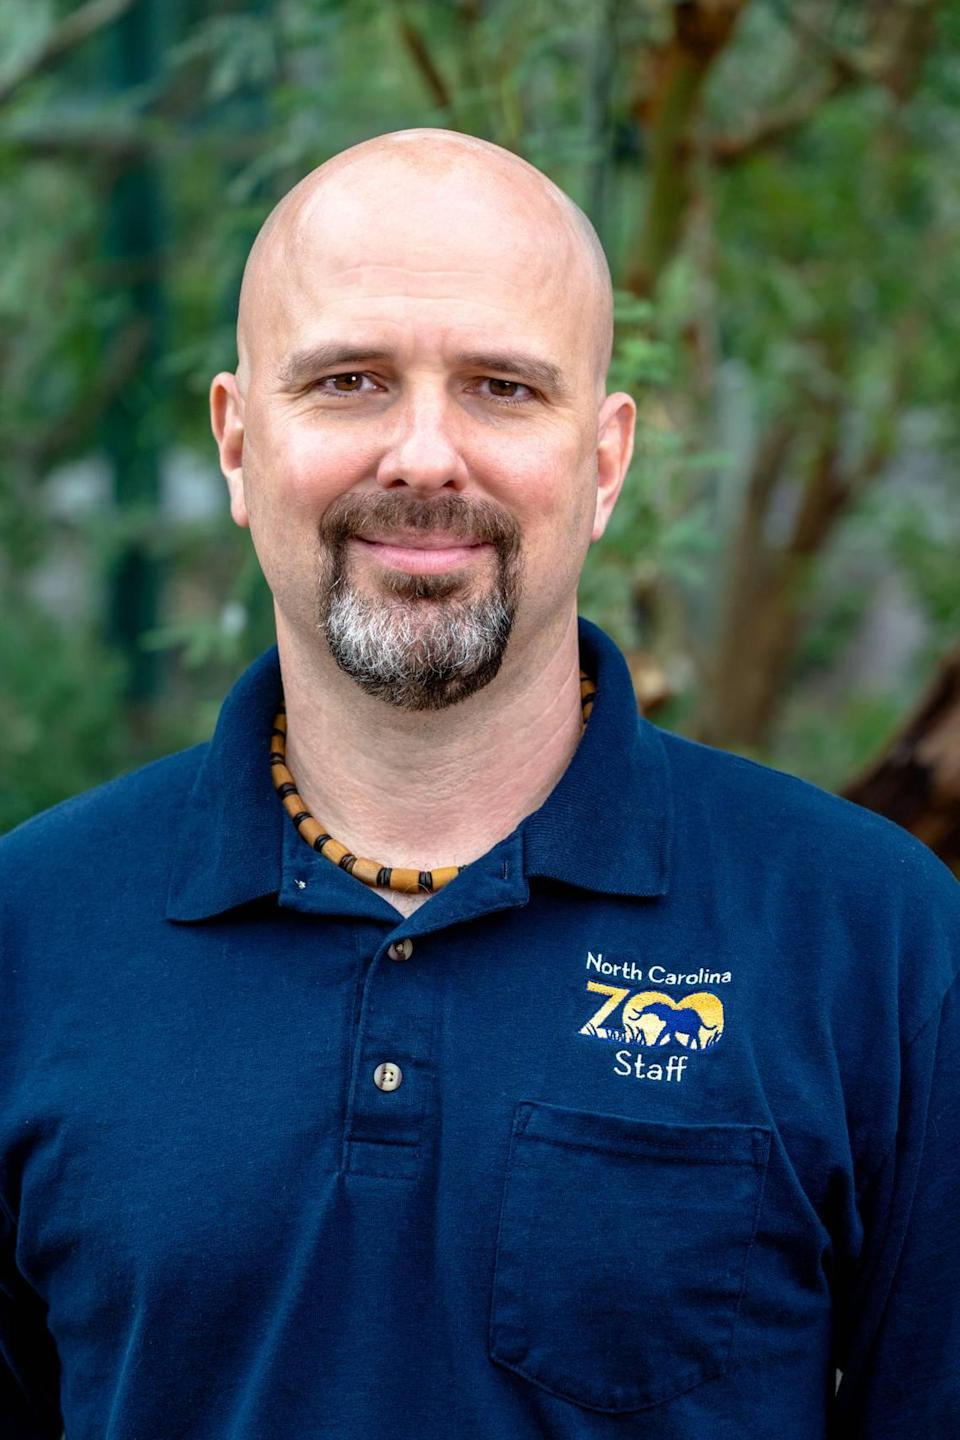 Jb Minter is the director of animal health and chief veterinarian at the North Carolina Zoo. He reached out to the American drug company Zoetis in March about an experimental COVID-19 vaccine for animals. The first doses are set to arrive in the next two weeks.